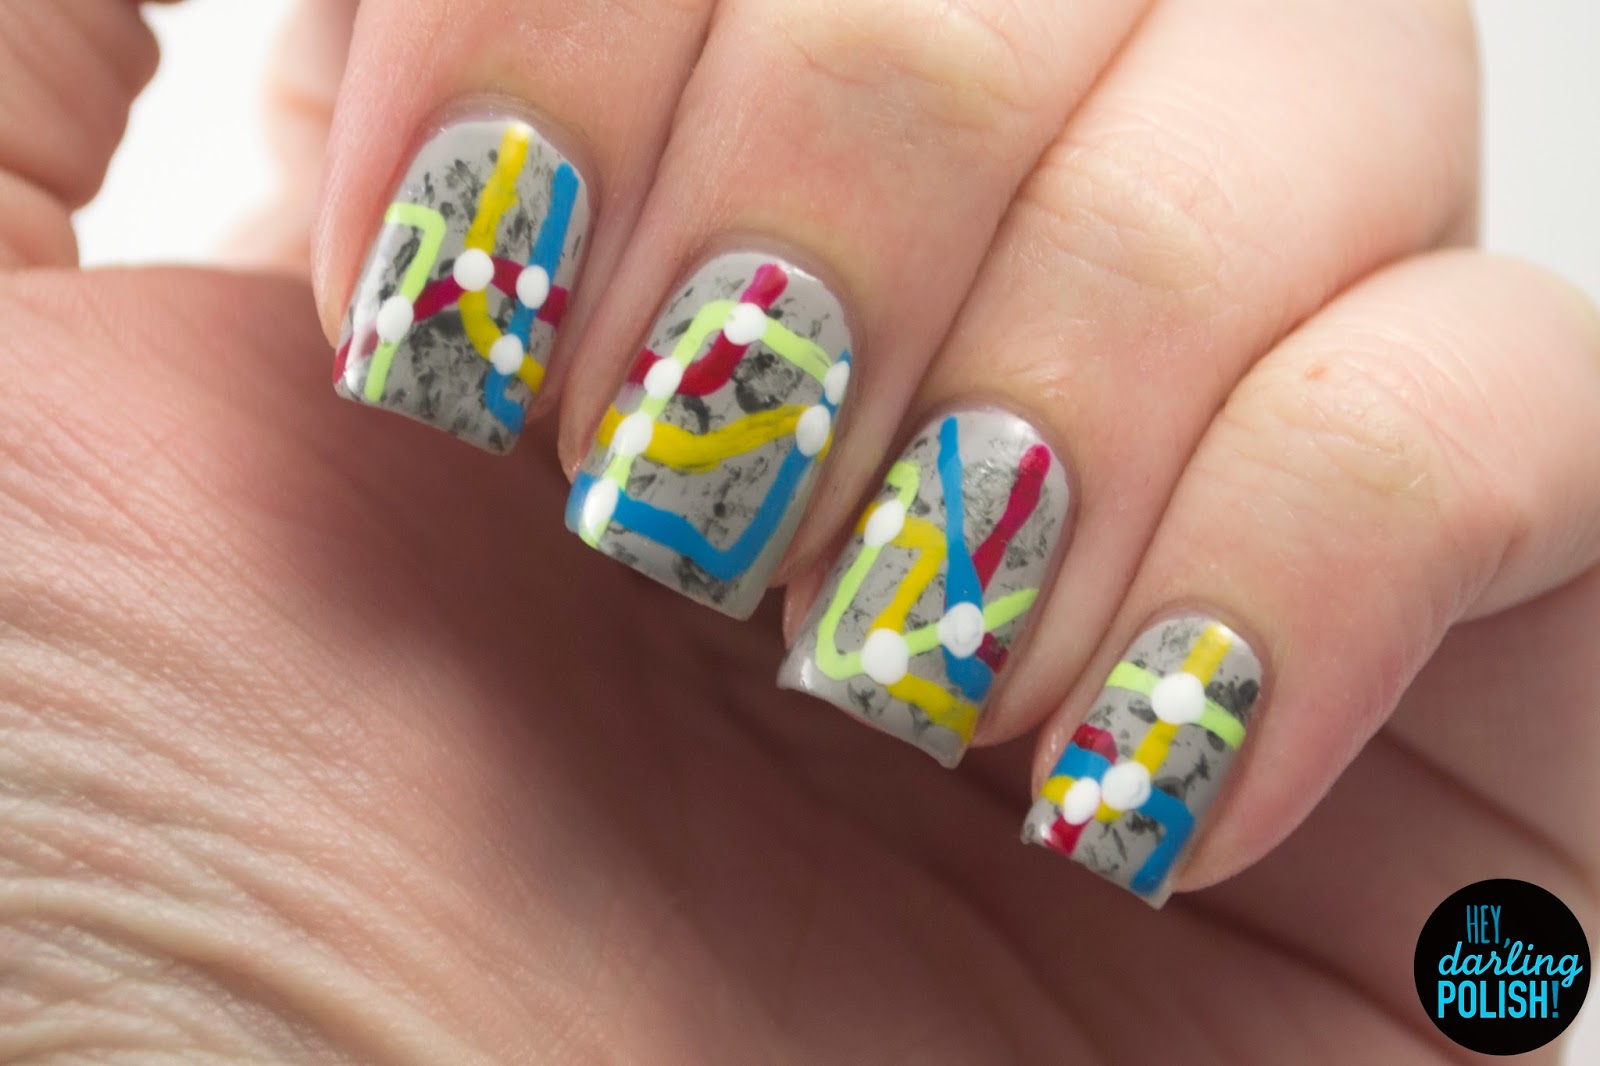 nails, nail art, nail polish, polish, grey, red, blue, yellow, green, hey darling polish, nail art ideas linkup, subway, free hand